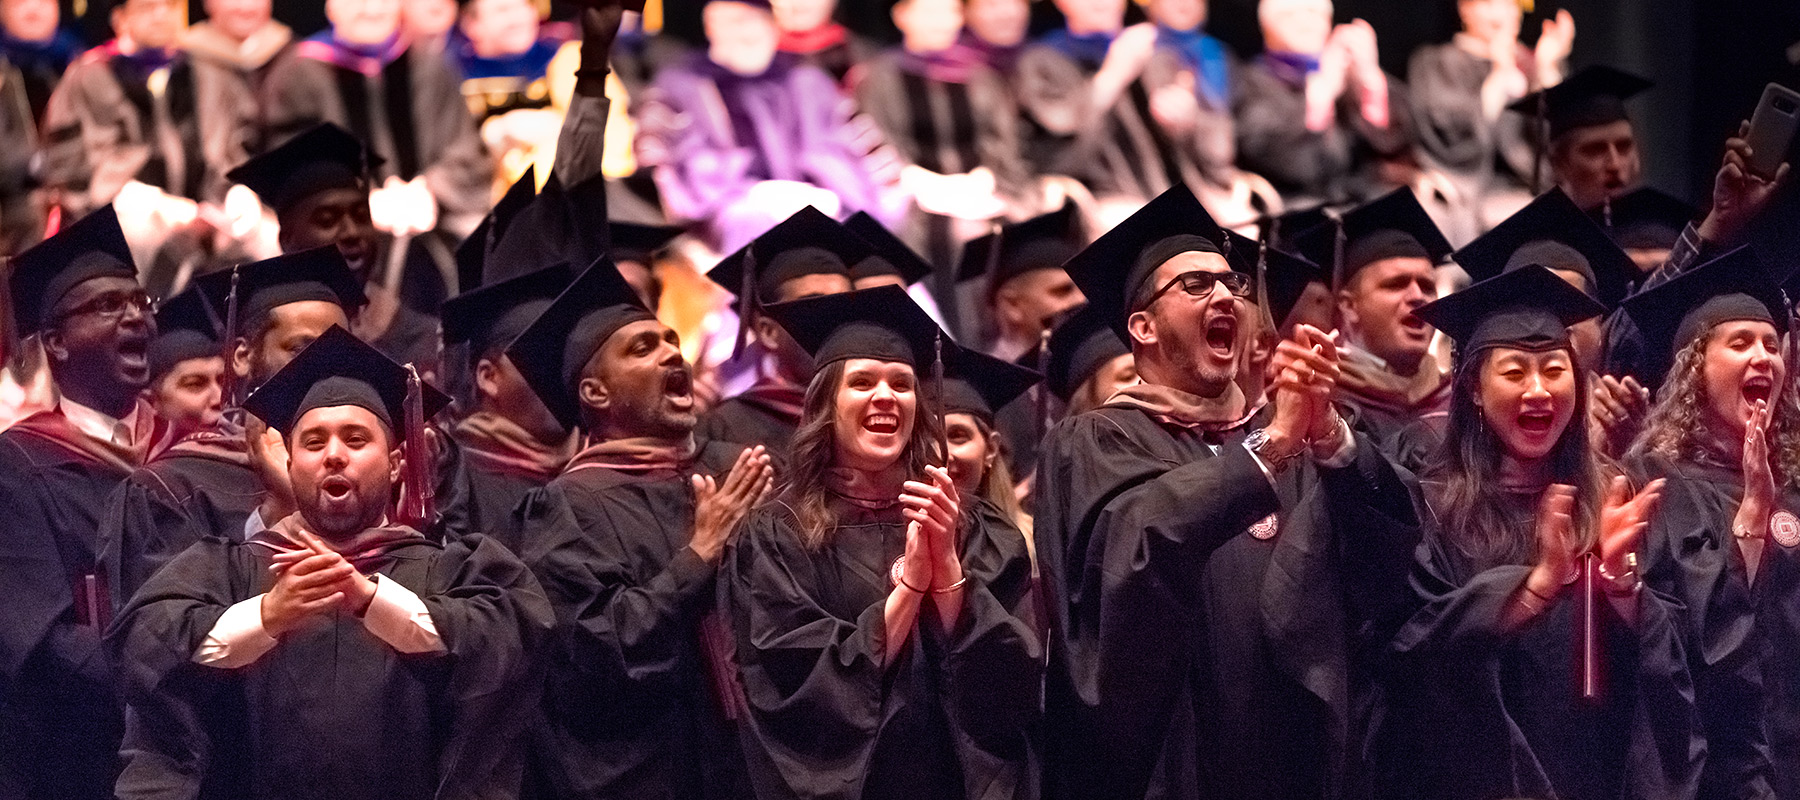 Indiana University Graduation 2020.Graduation Student Life Executive Degree Programs